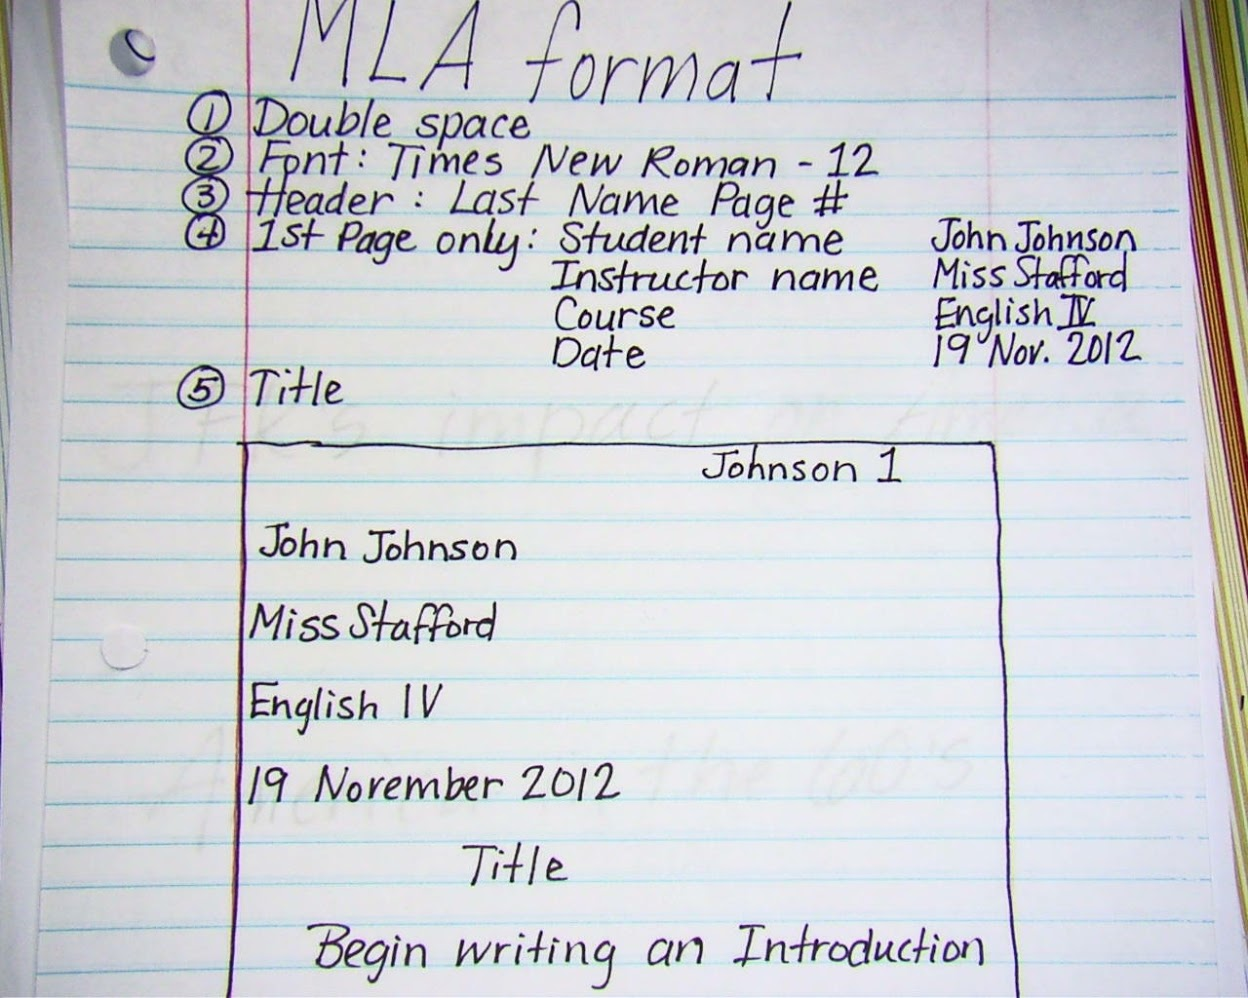 020 Mla2bnotes How To Write Research Paper Introduction Fascinating A Mla An For Full